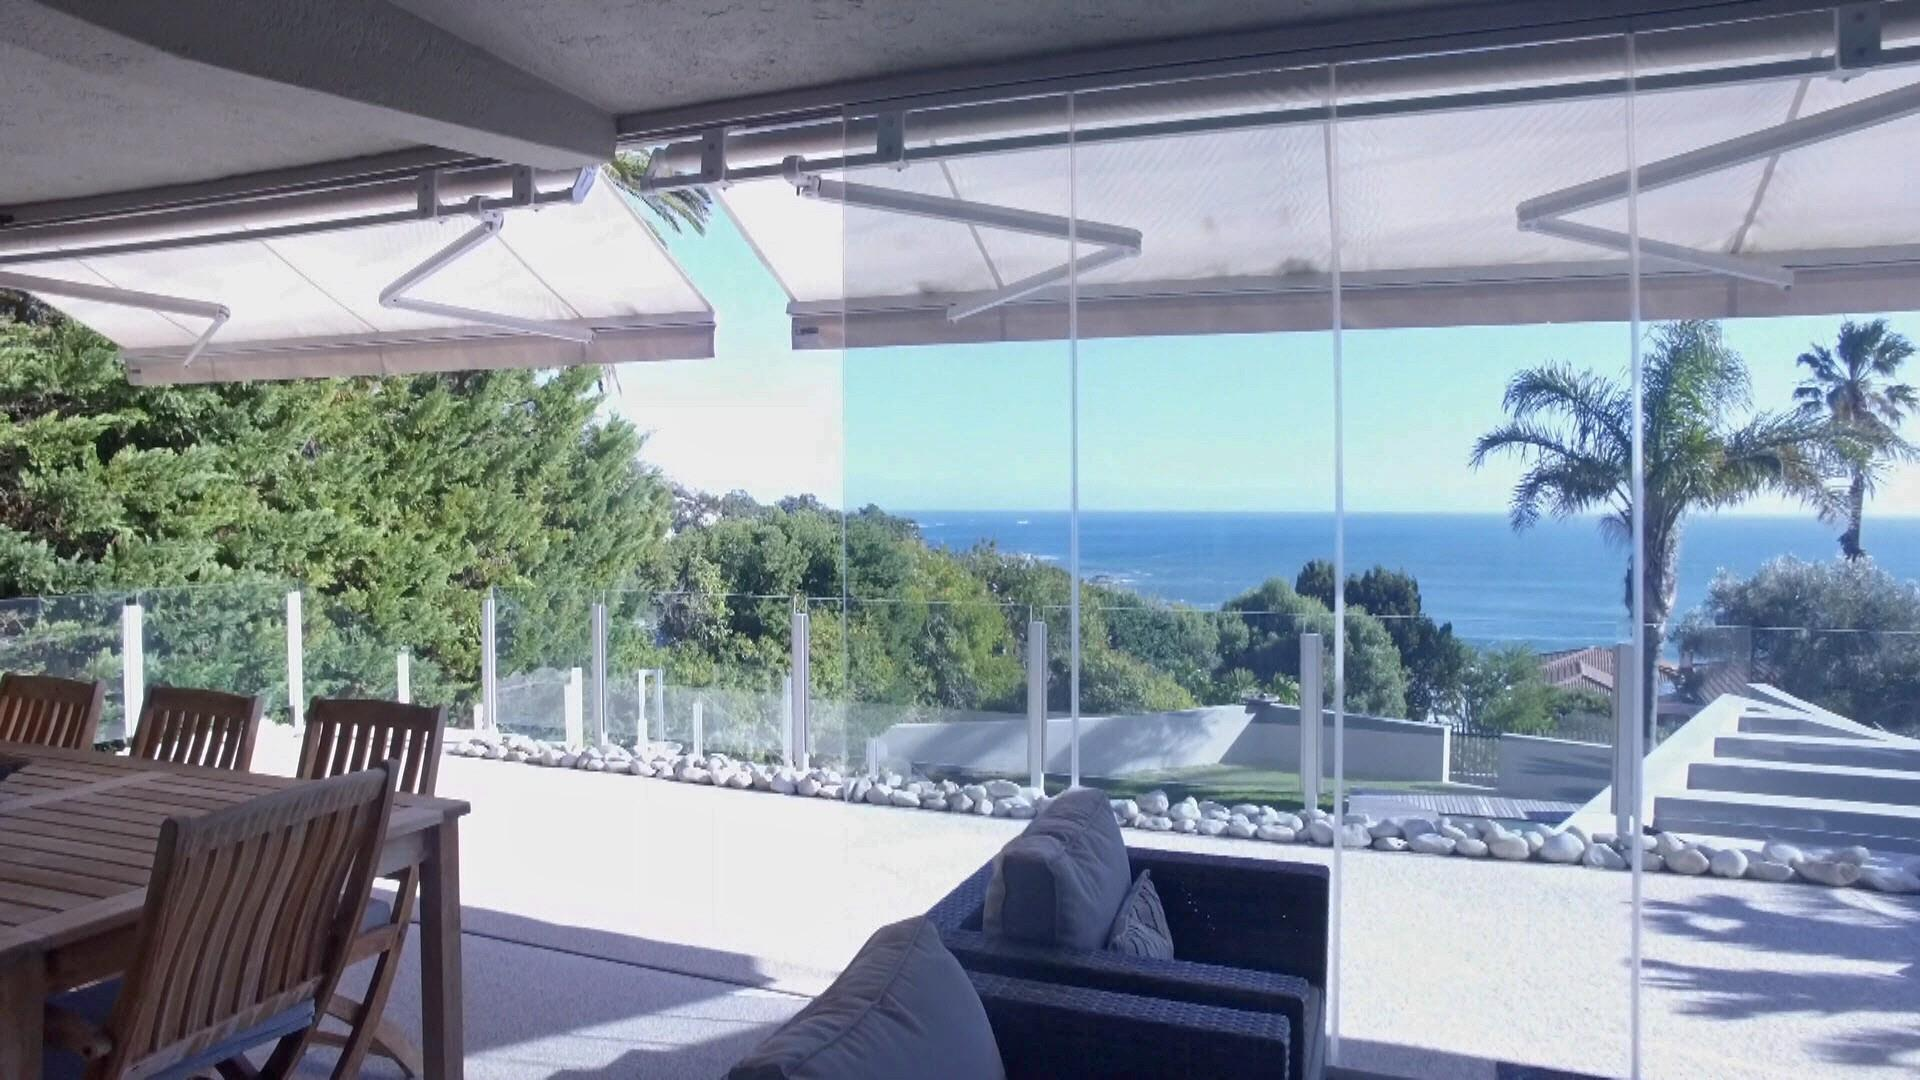 4 Bedroom House For Sale in Llandudno